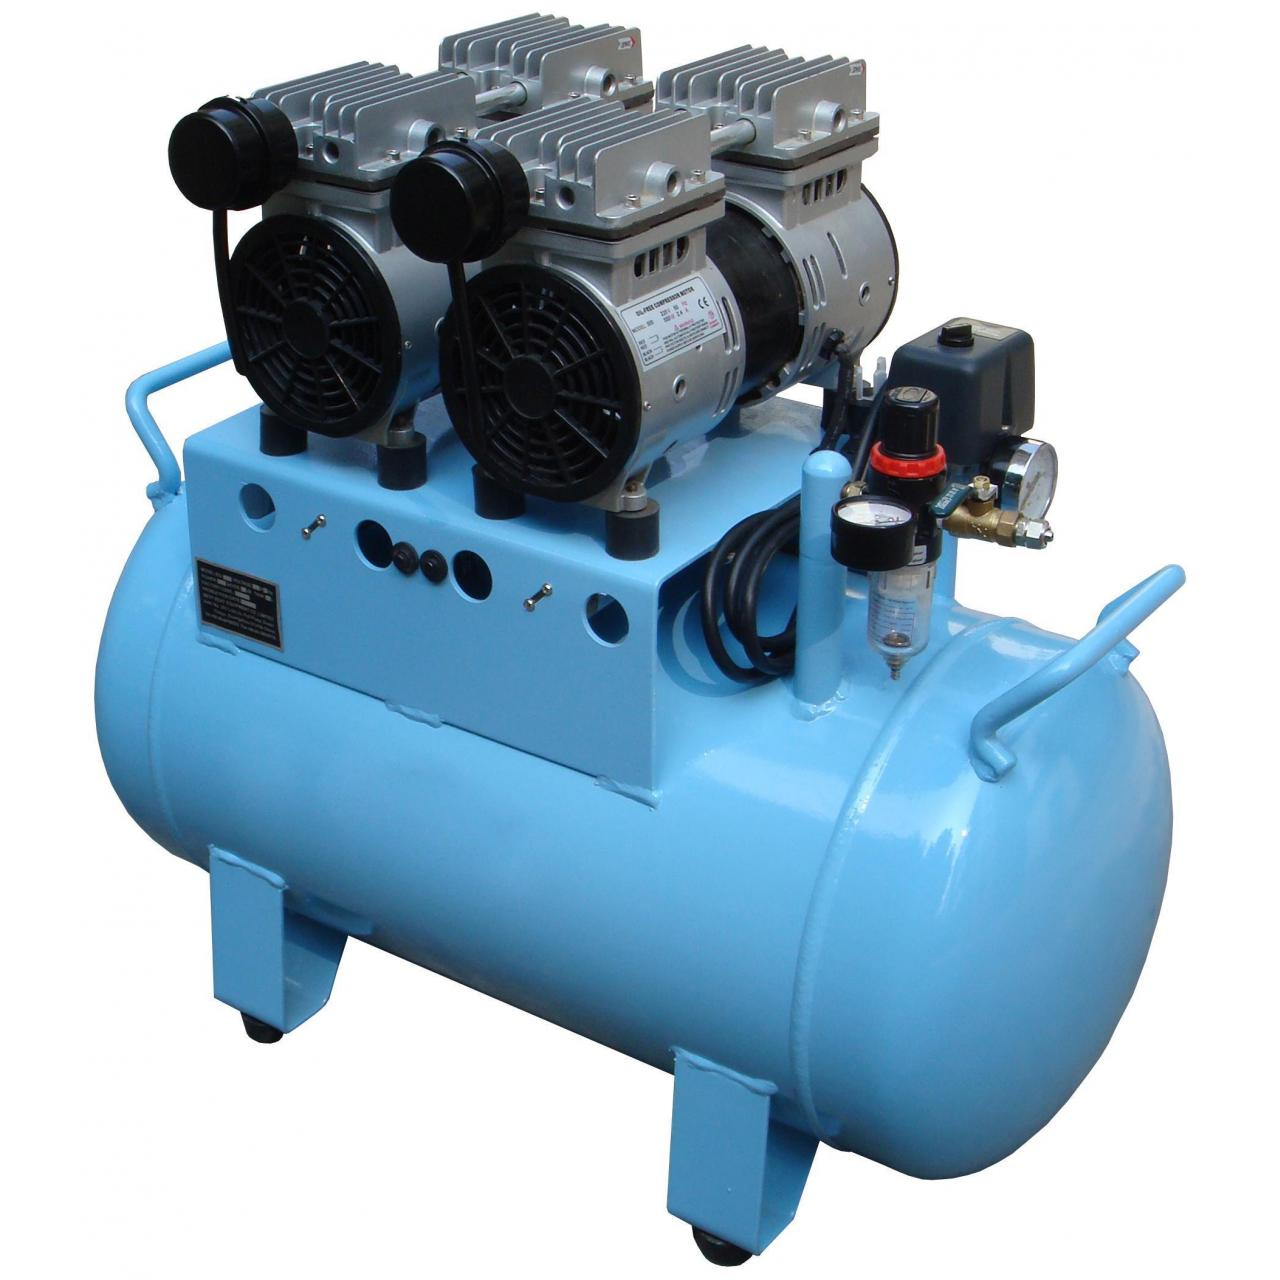 NM-SA004 Silent Oilless Air Compressor Manufactures